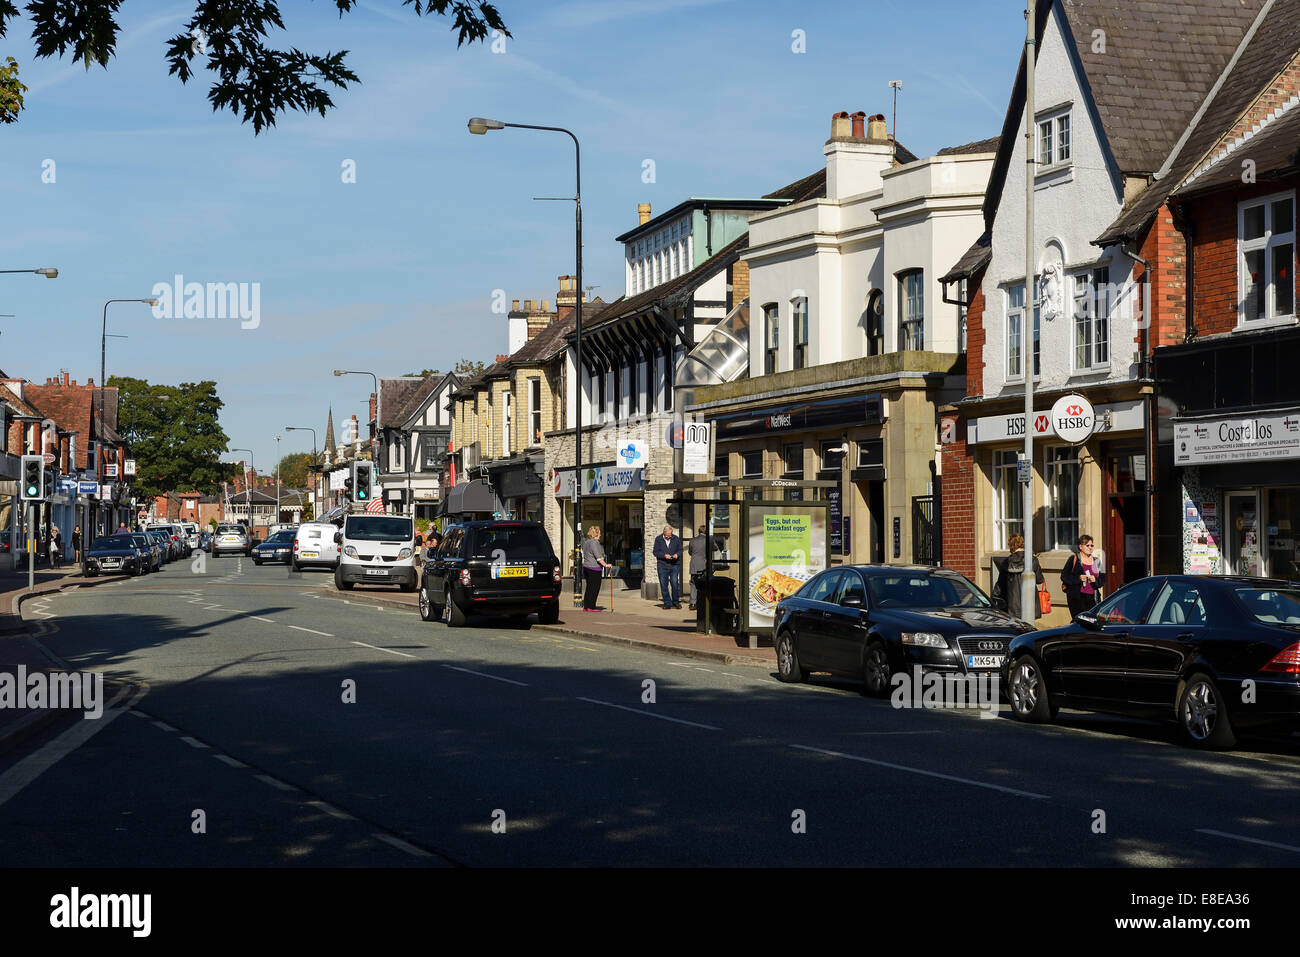 Shops and businesses on Ashley Road in the centre of Hale village Greater Manchester UK - Stock Image